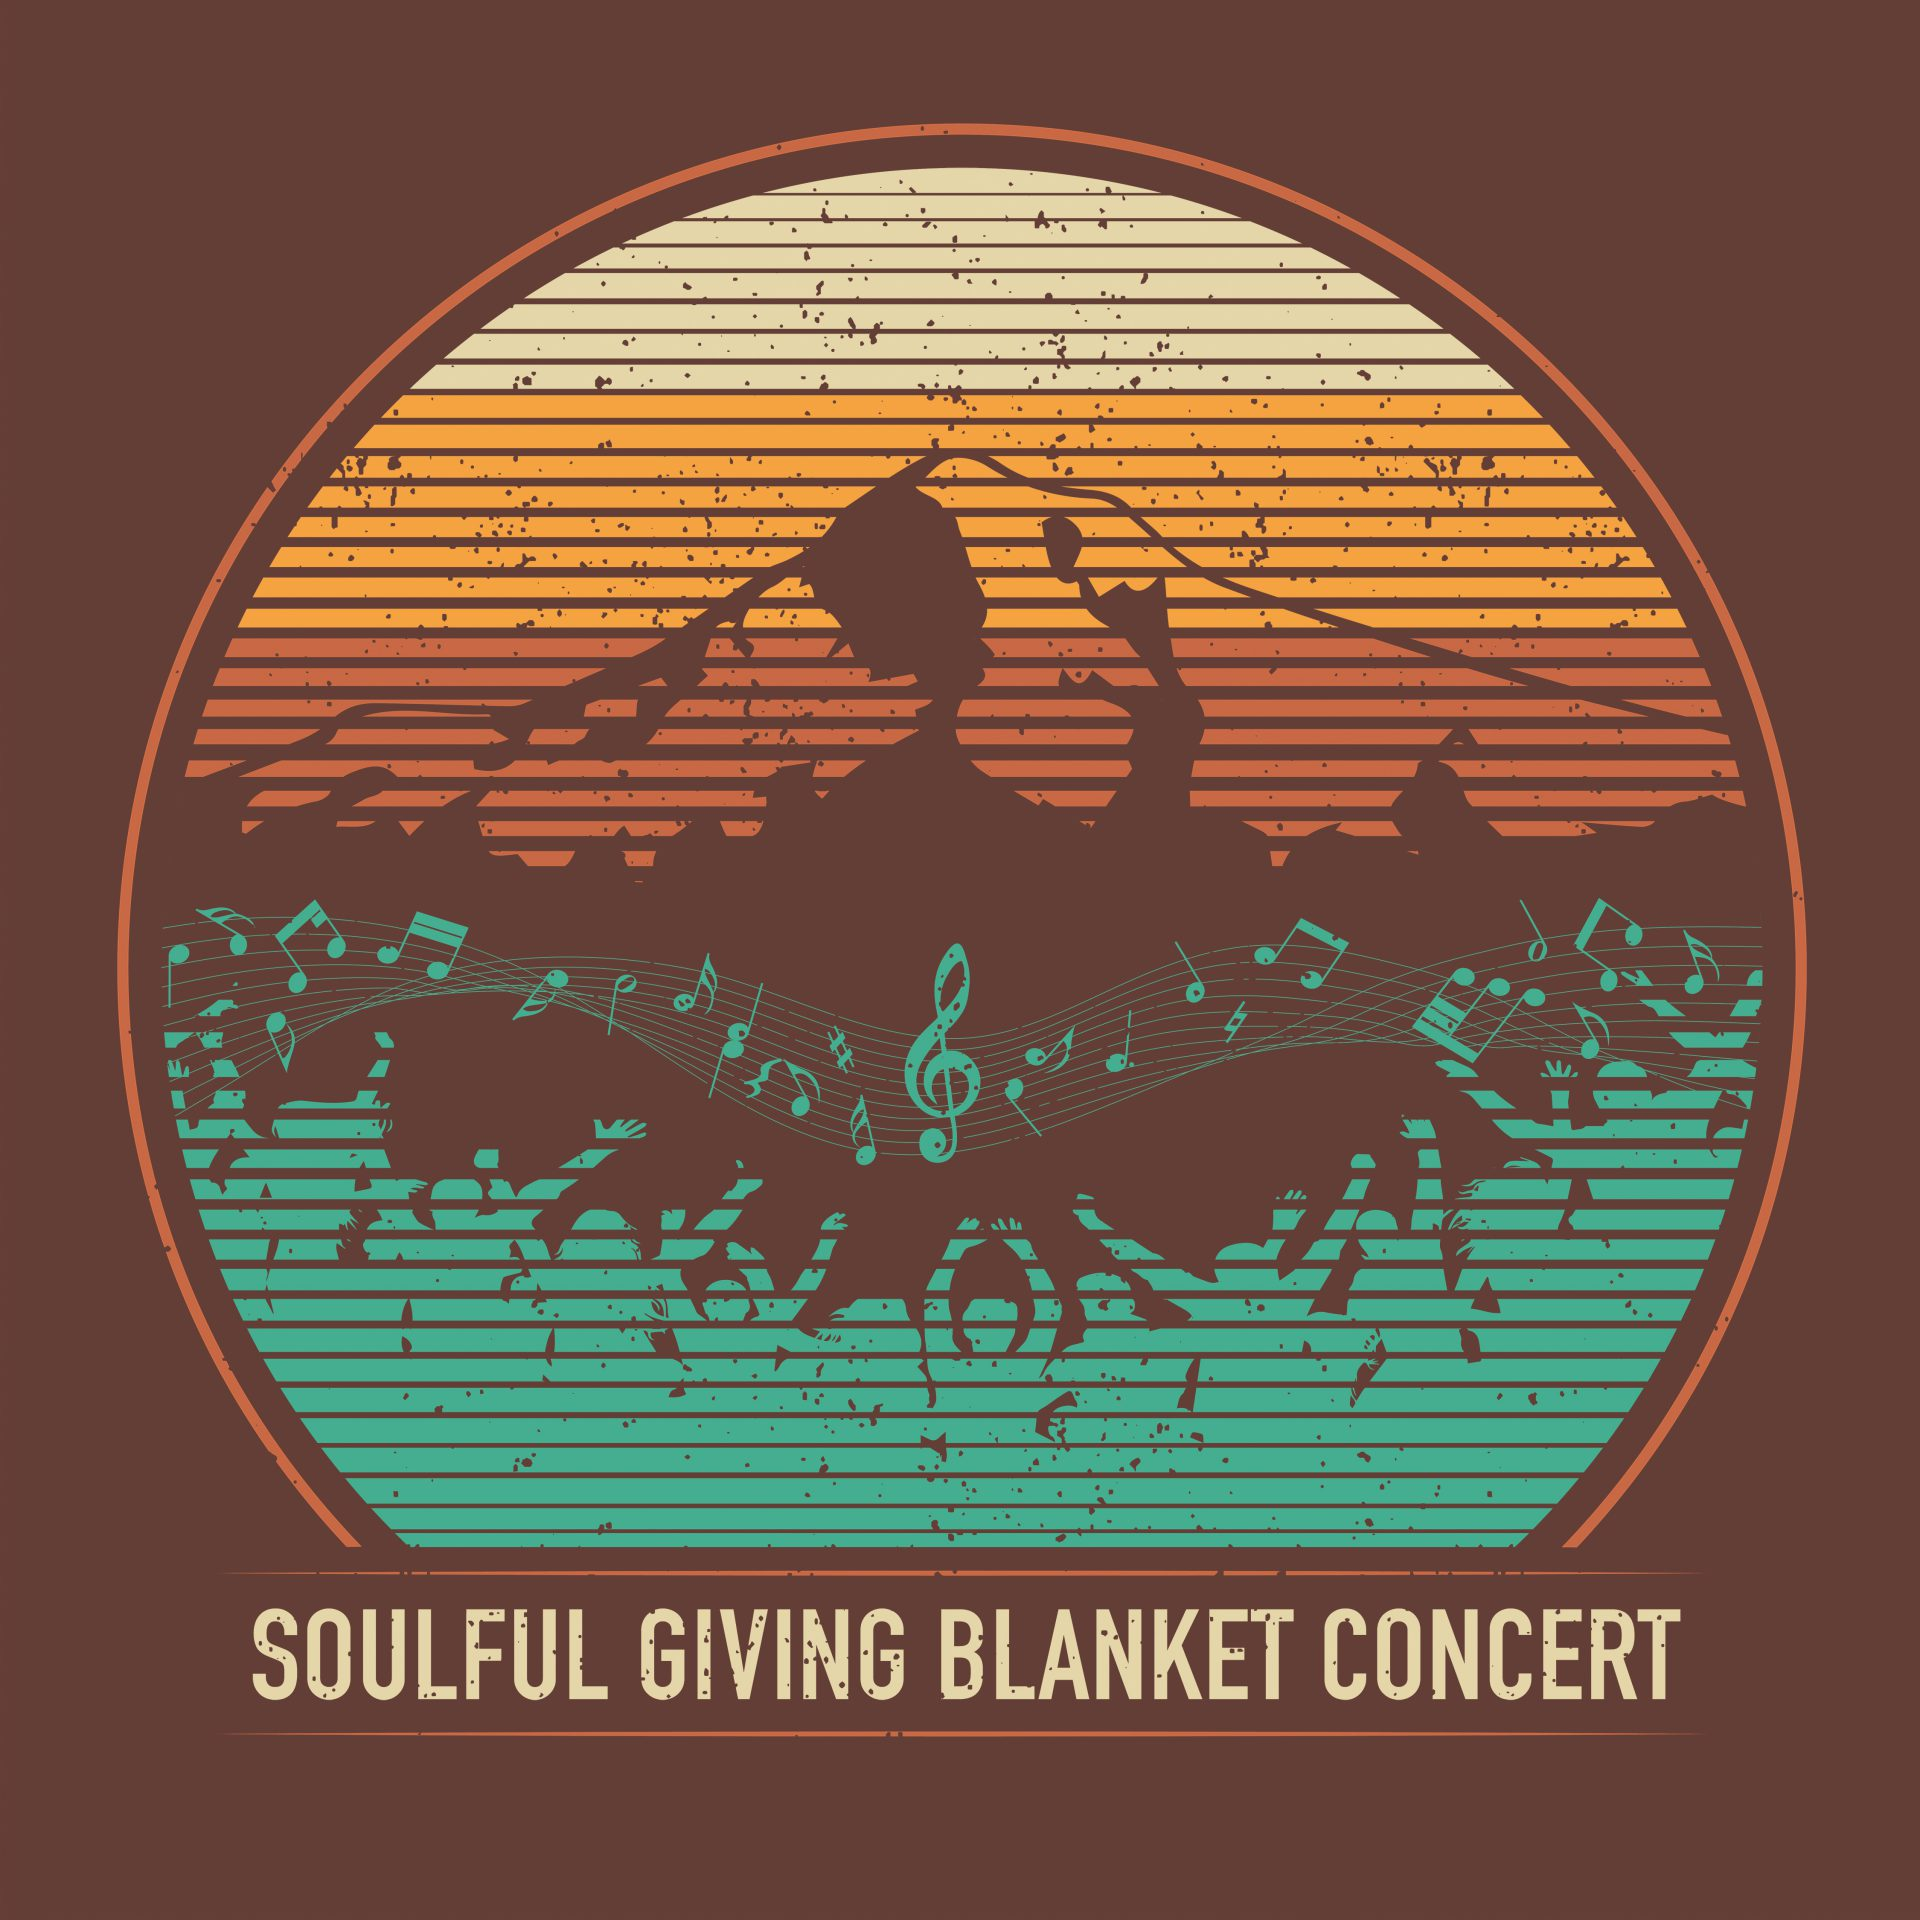 Soulful Giving Blanket Concert T-Shirt